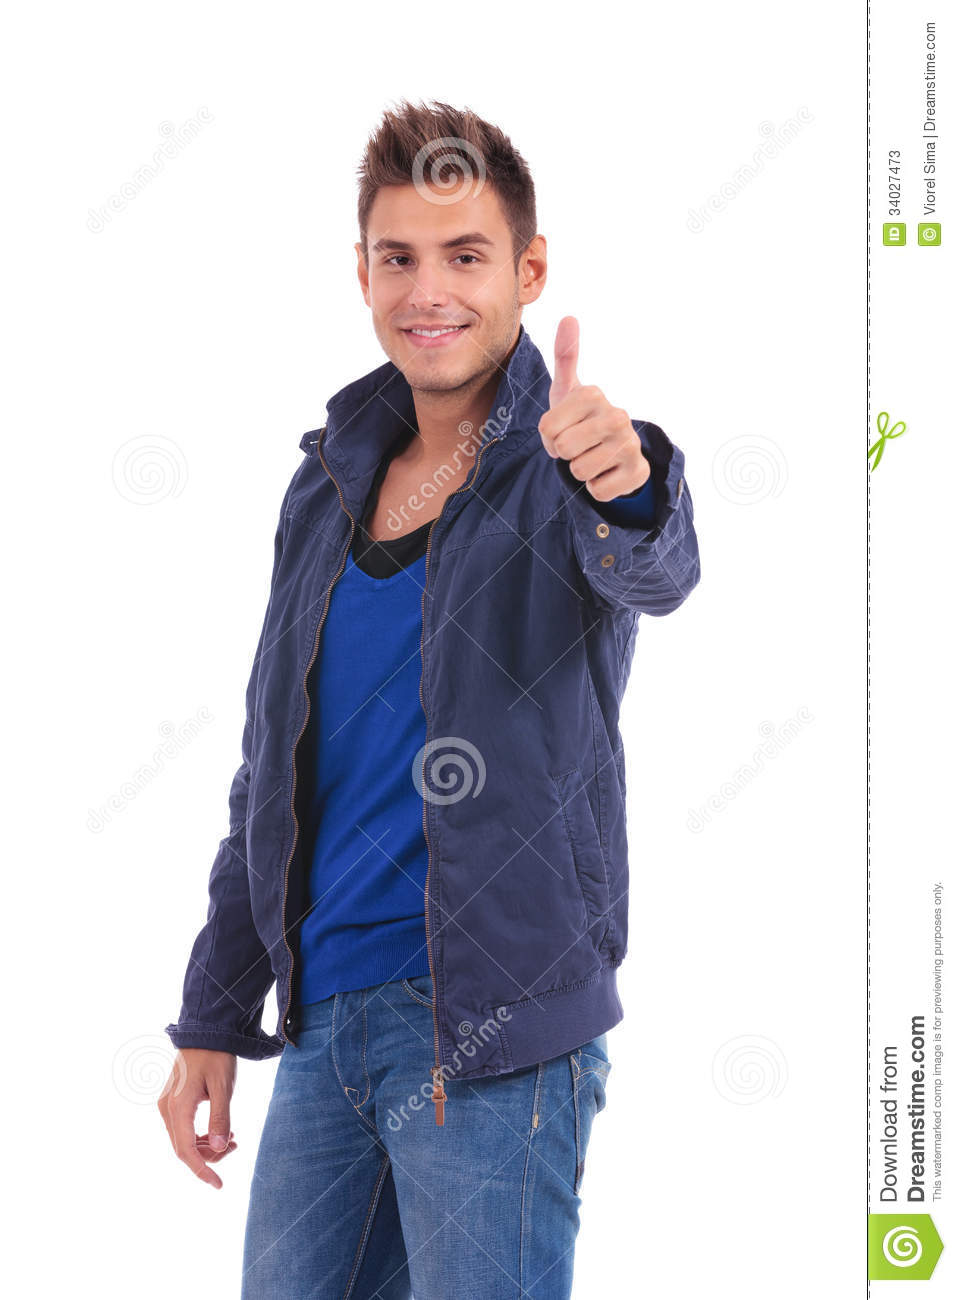 Happy casual man in jacket making the ok sign